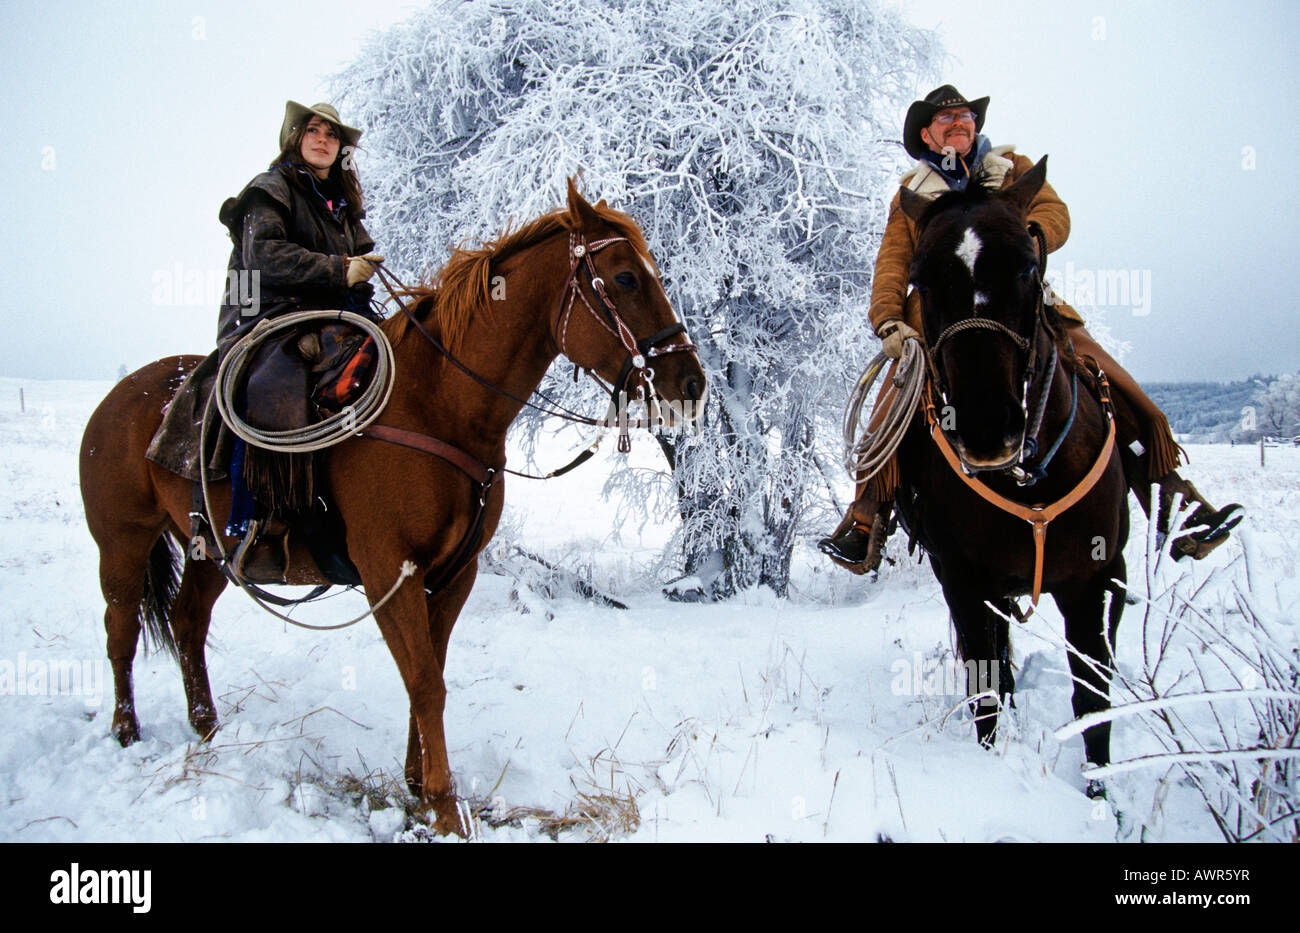 Cowboy And Cowgirl Surveying From Horses Canada Stock